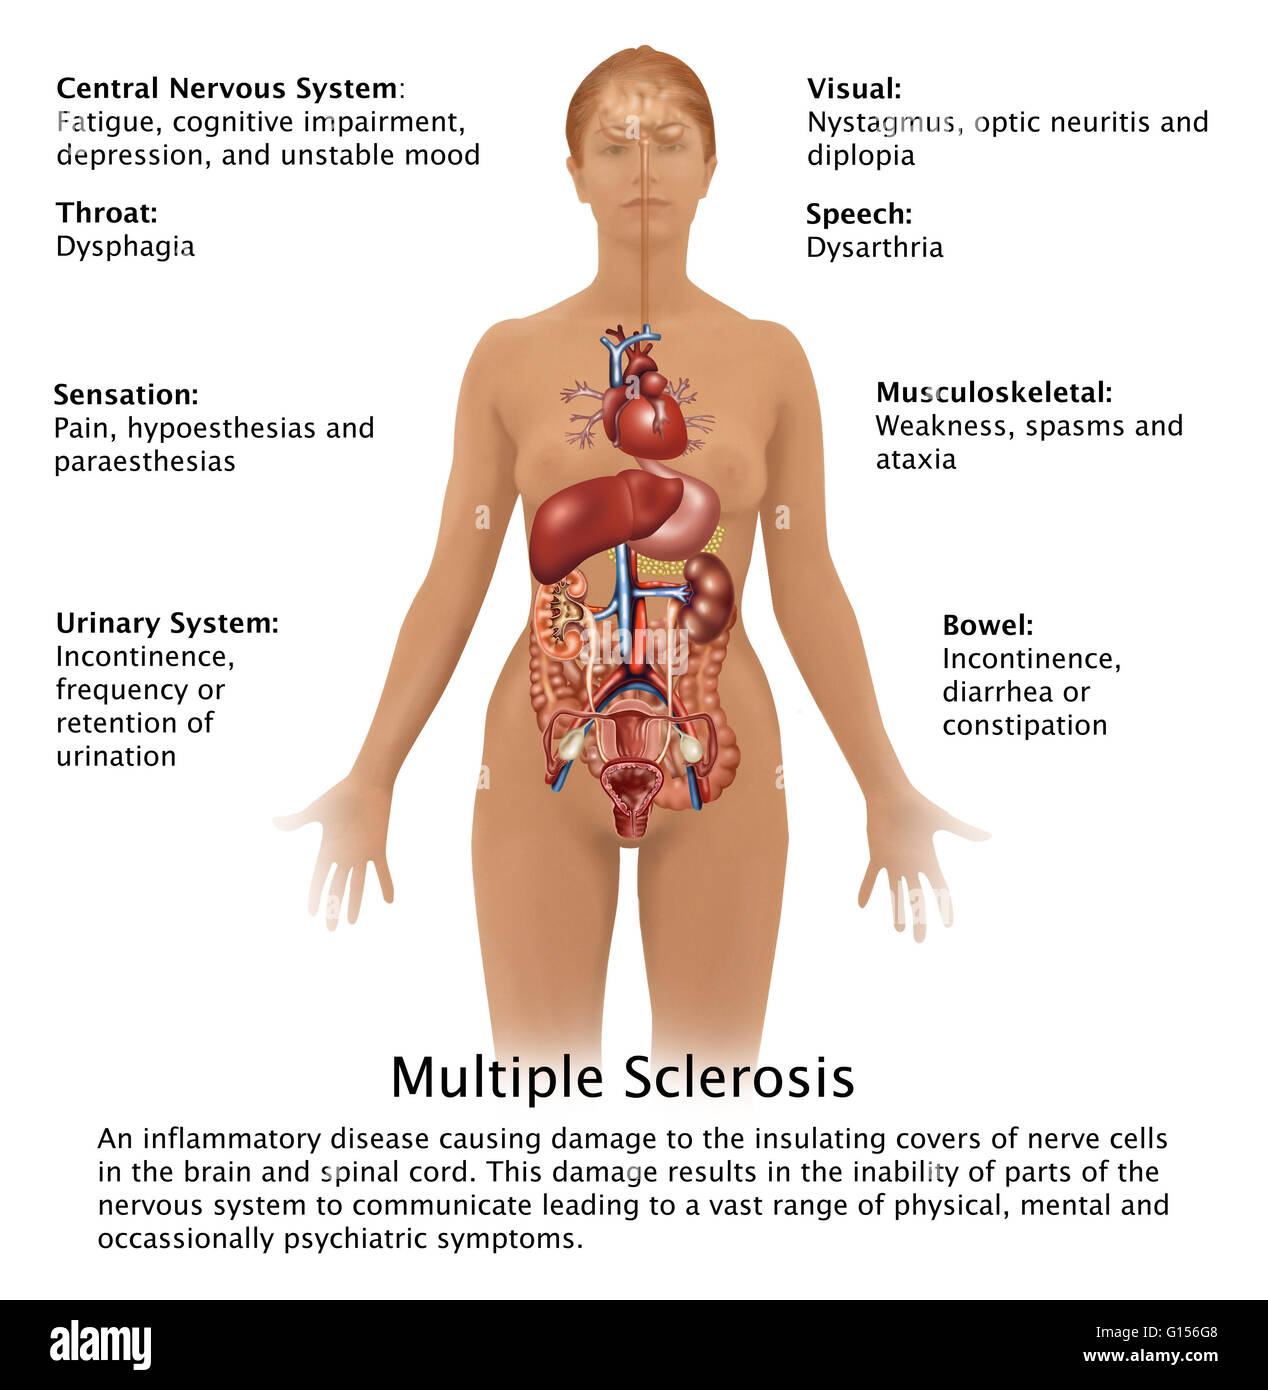 diagram showing the symptoms of multiple sclerosis and their